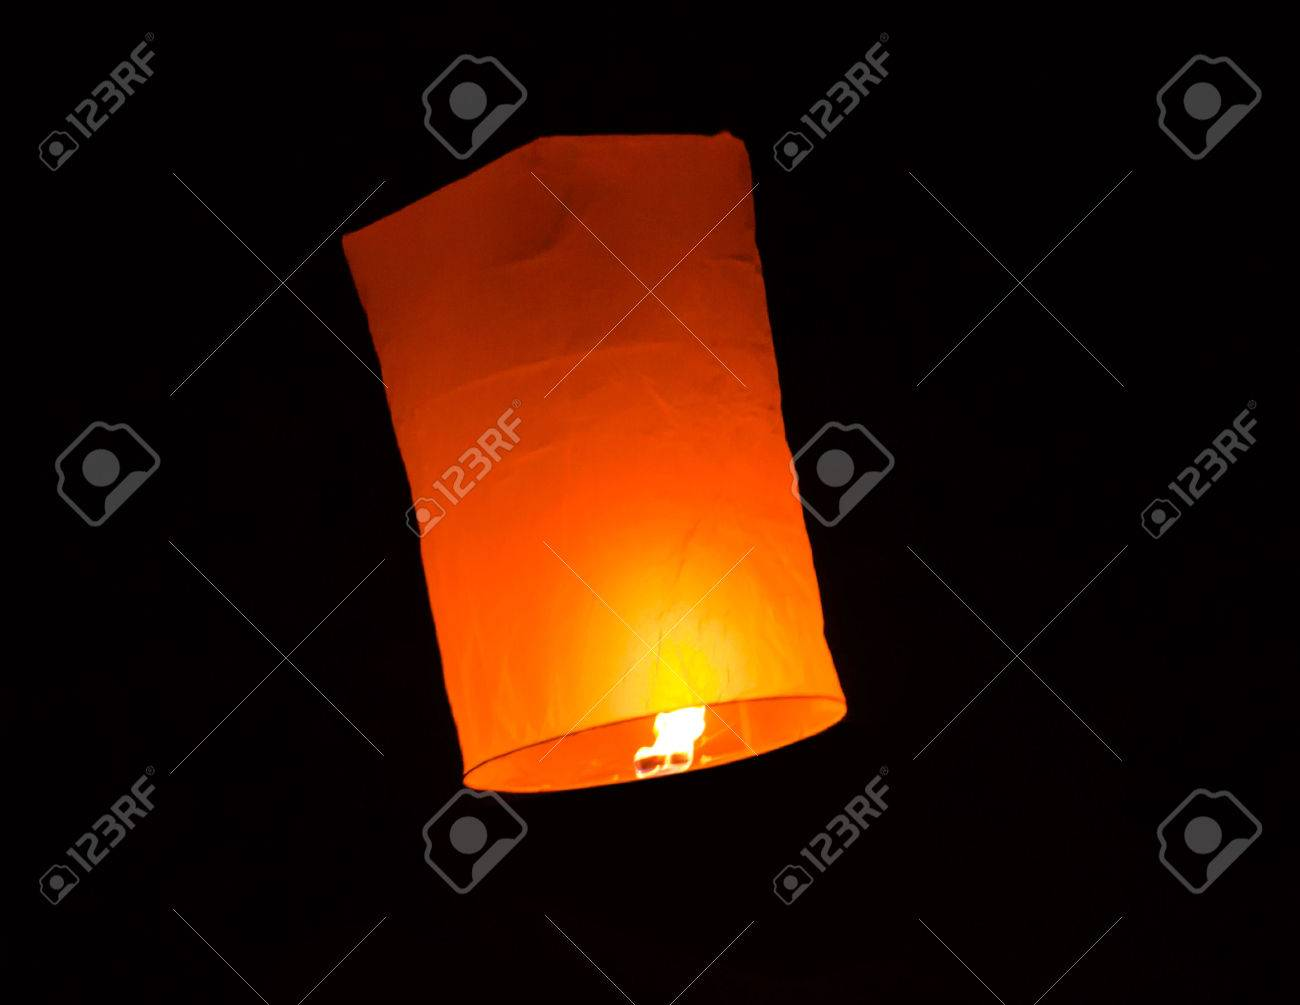 Floating lantern in Yee Peng festival, Buddhist floating lanterns to the Buddha in Sansai district, Chiang Mai, Thailand. - 23770802